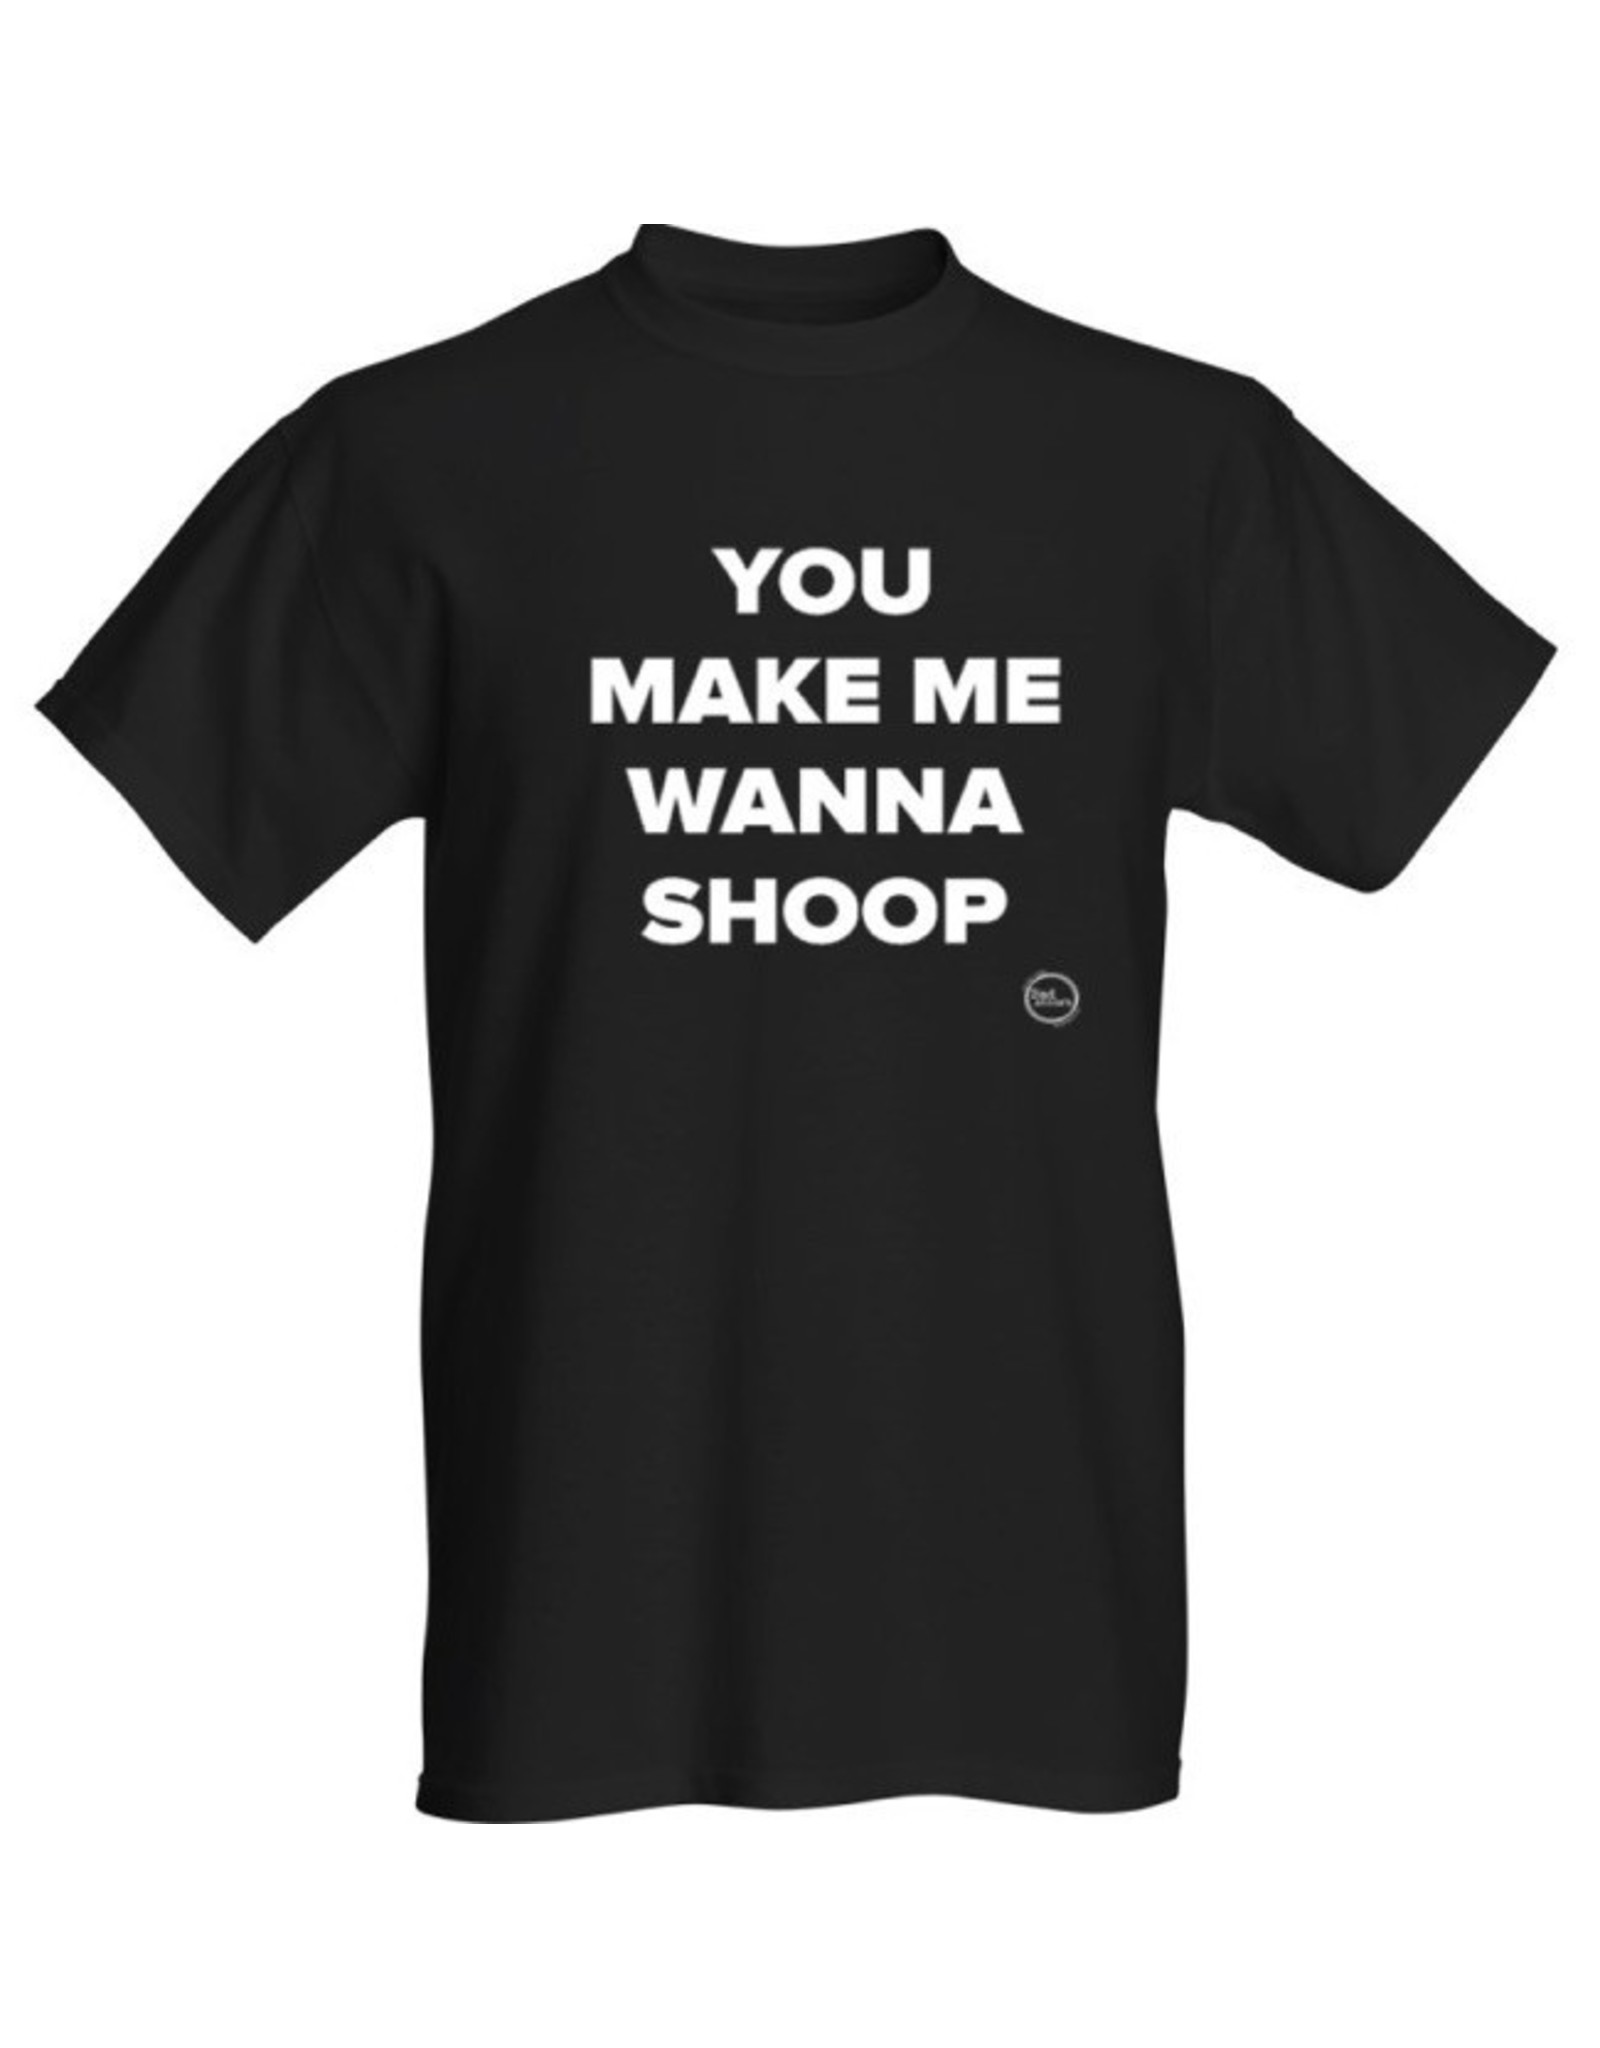 T-Shirt - You Make Me Wanna Shoop